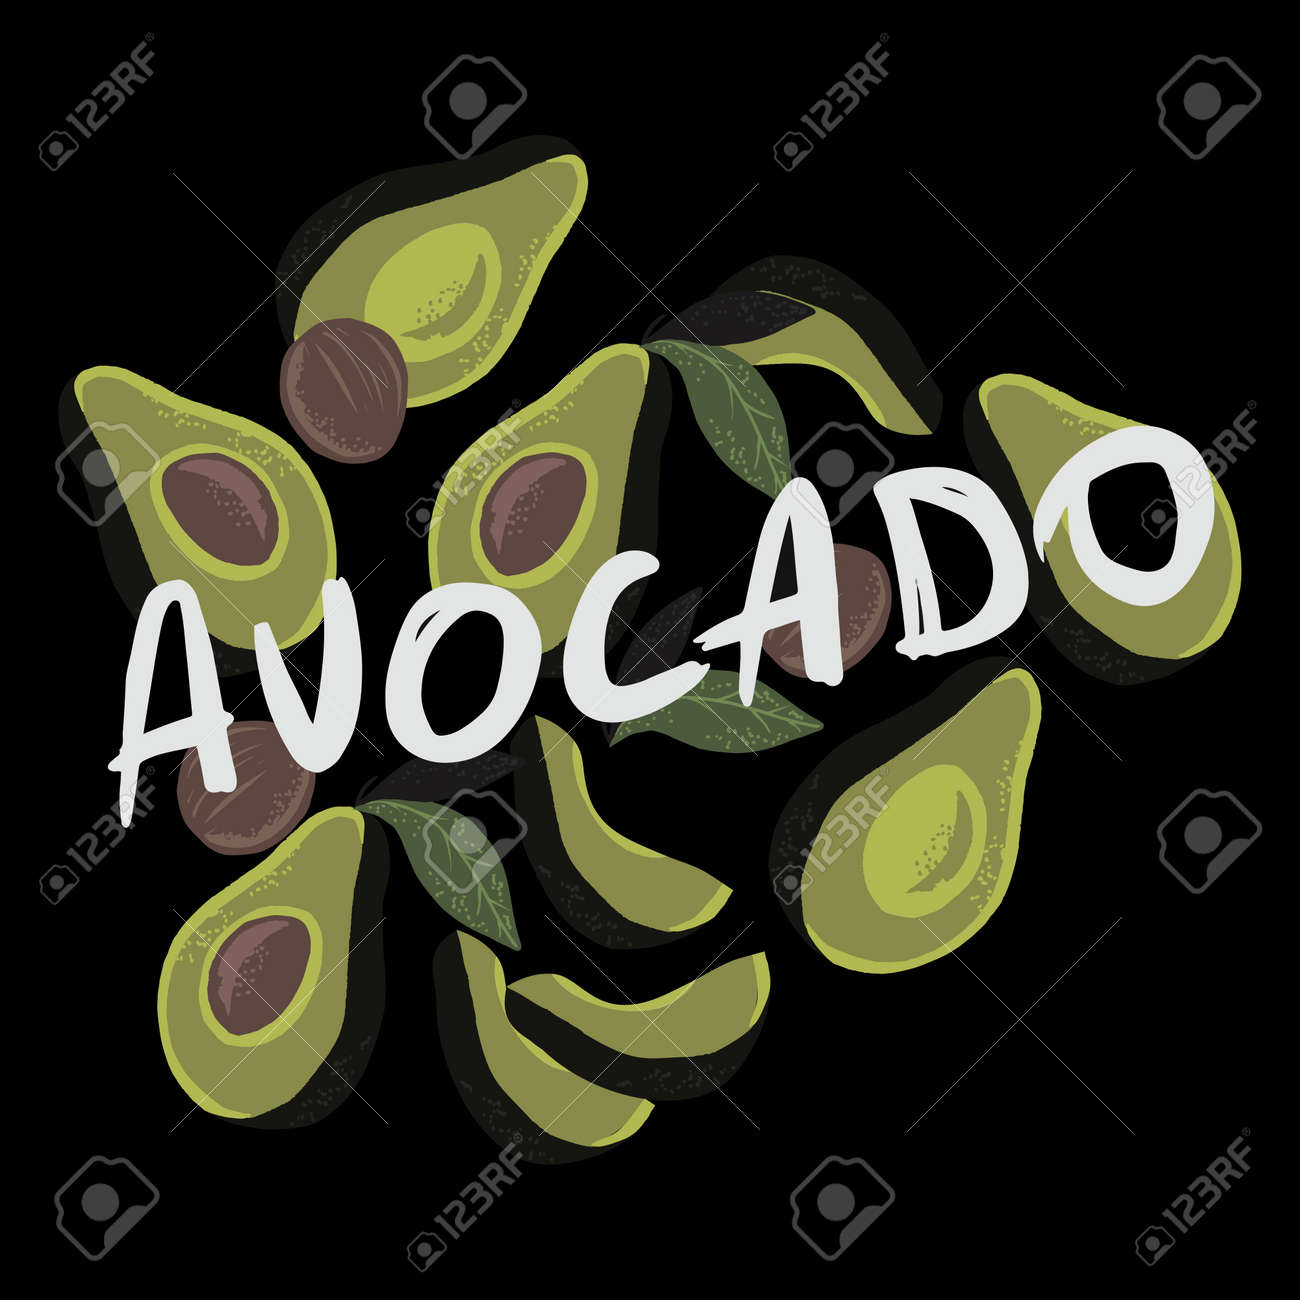 Vector illustration of half avocados on black background and white text avocado. - 154728222